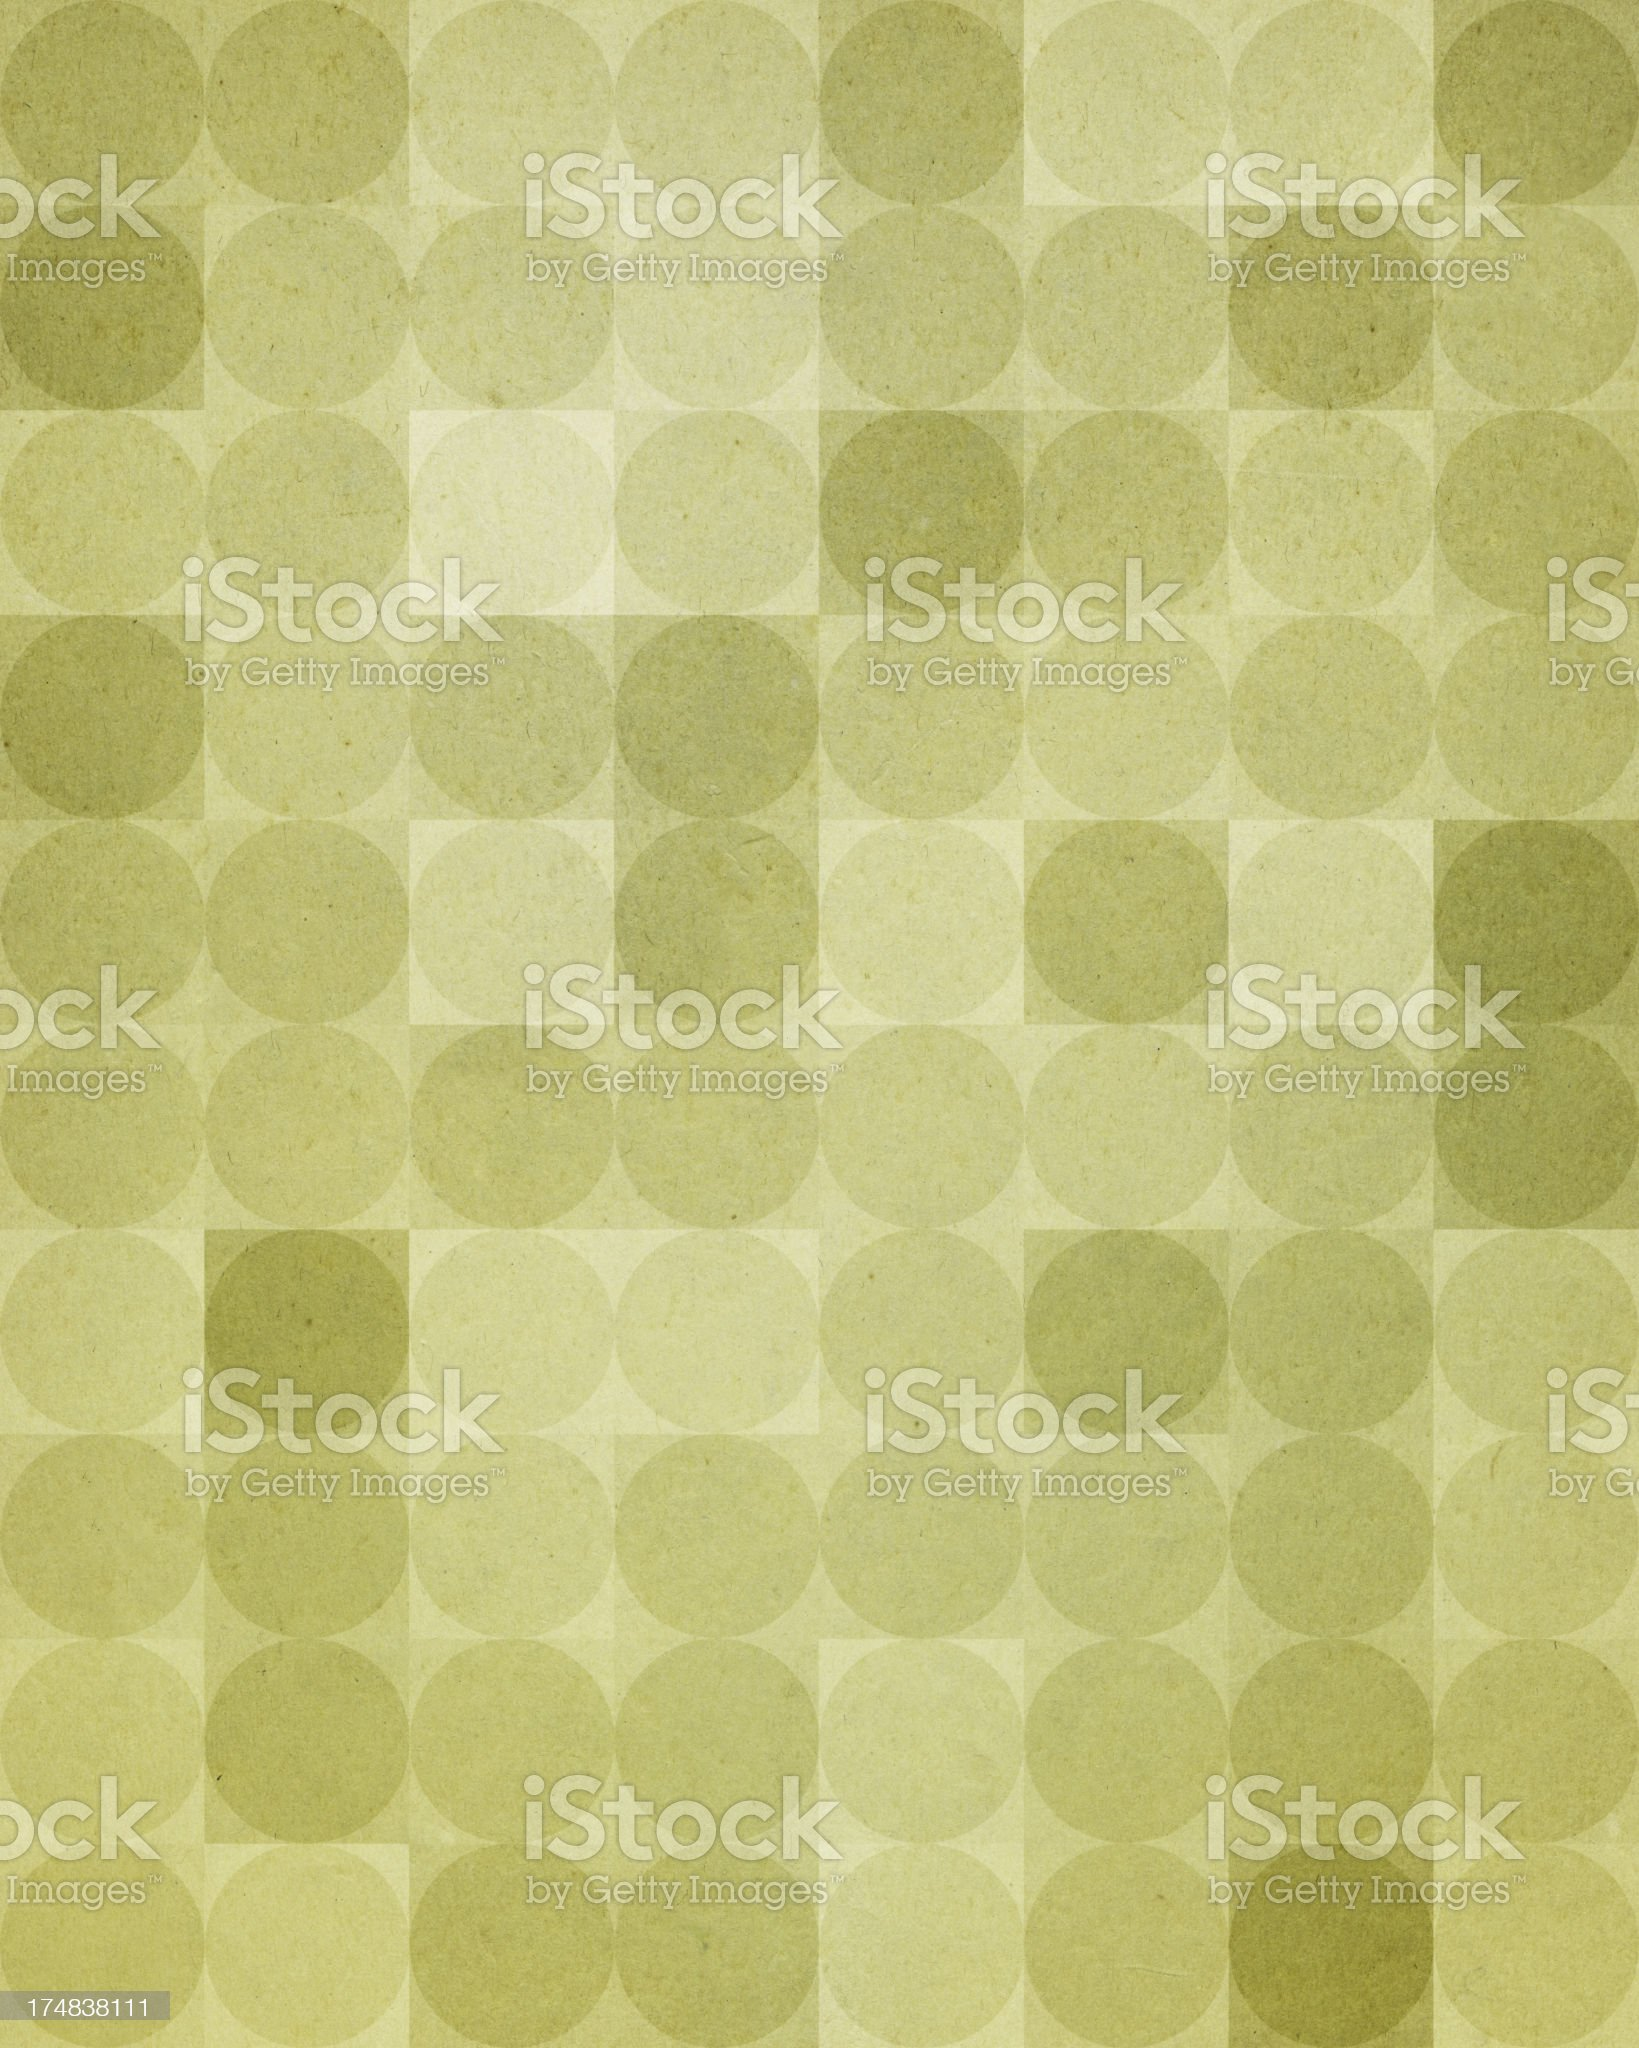 textured paper with green dot pattern royalty-free stock vector art